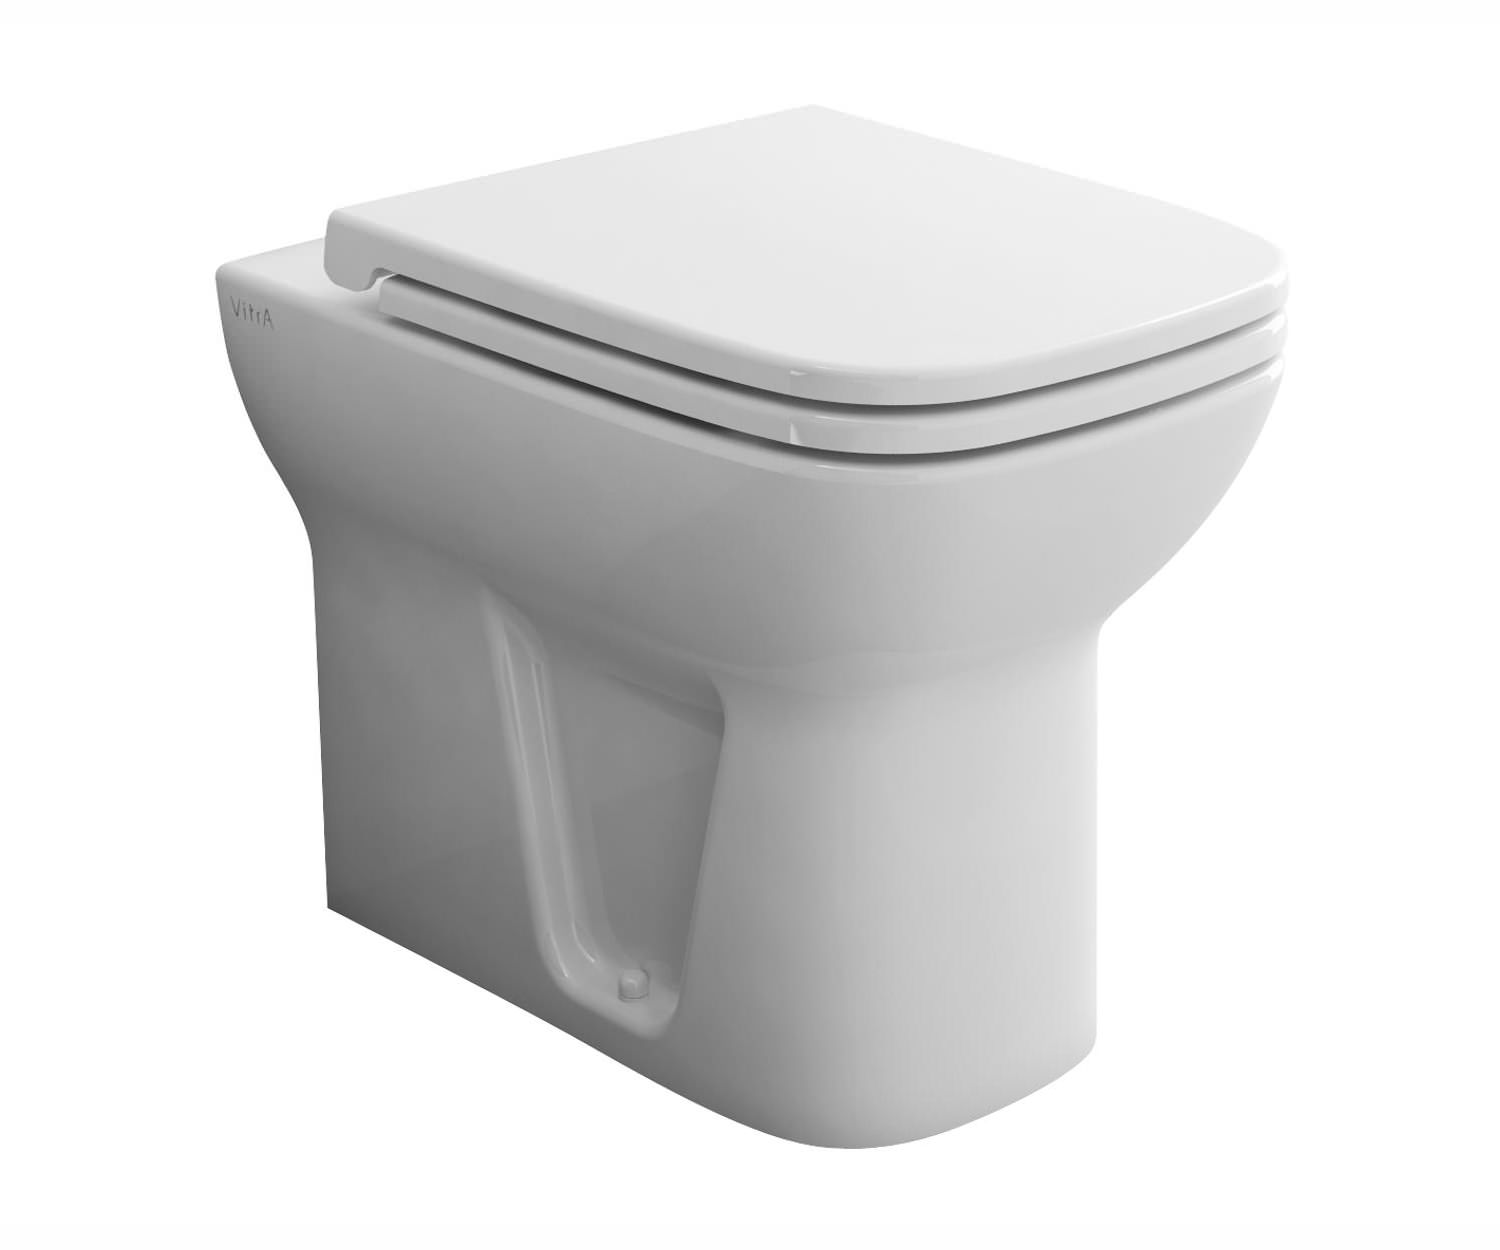 vitra s20 back to wall wc pan with toilet seat 5520l003 0075. Black Bedroom Furniture Sets. Home Design Ideas